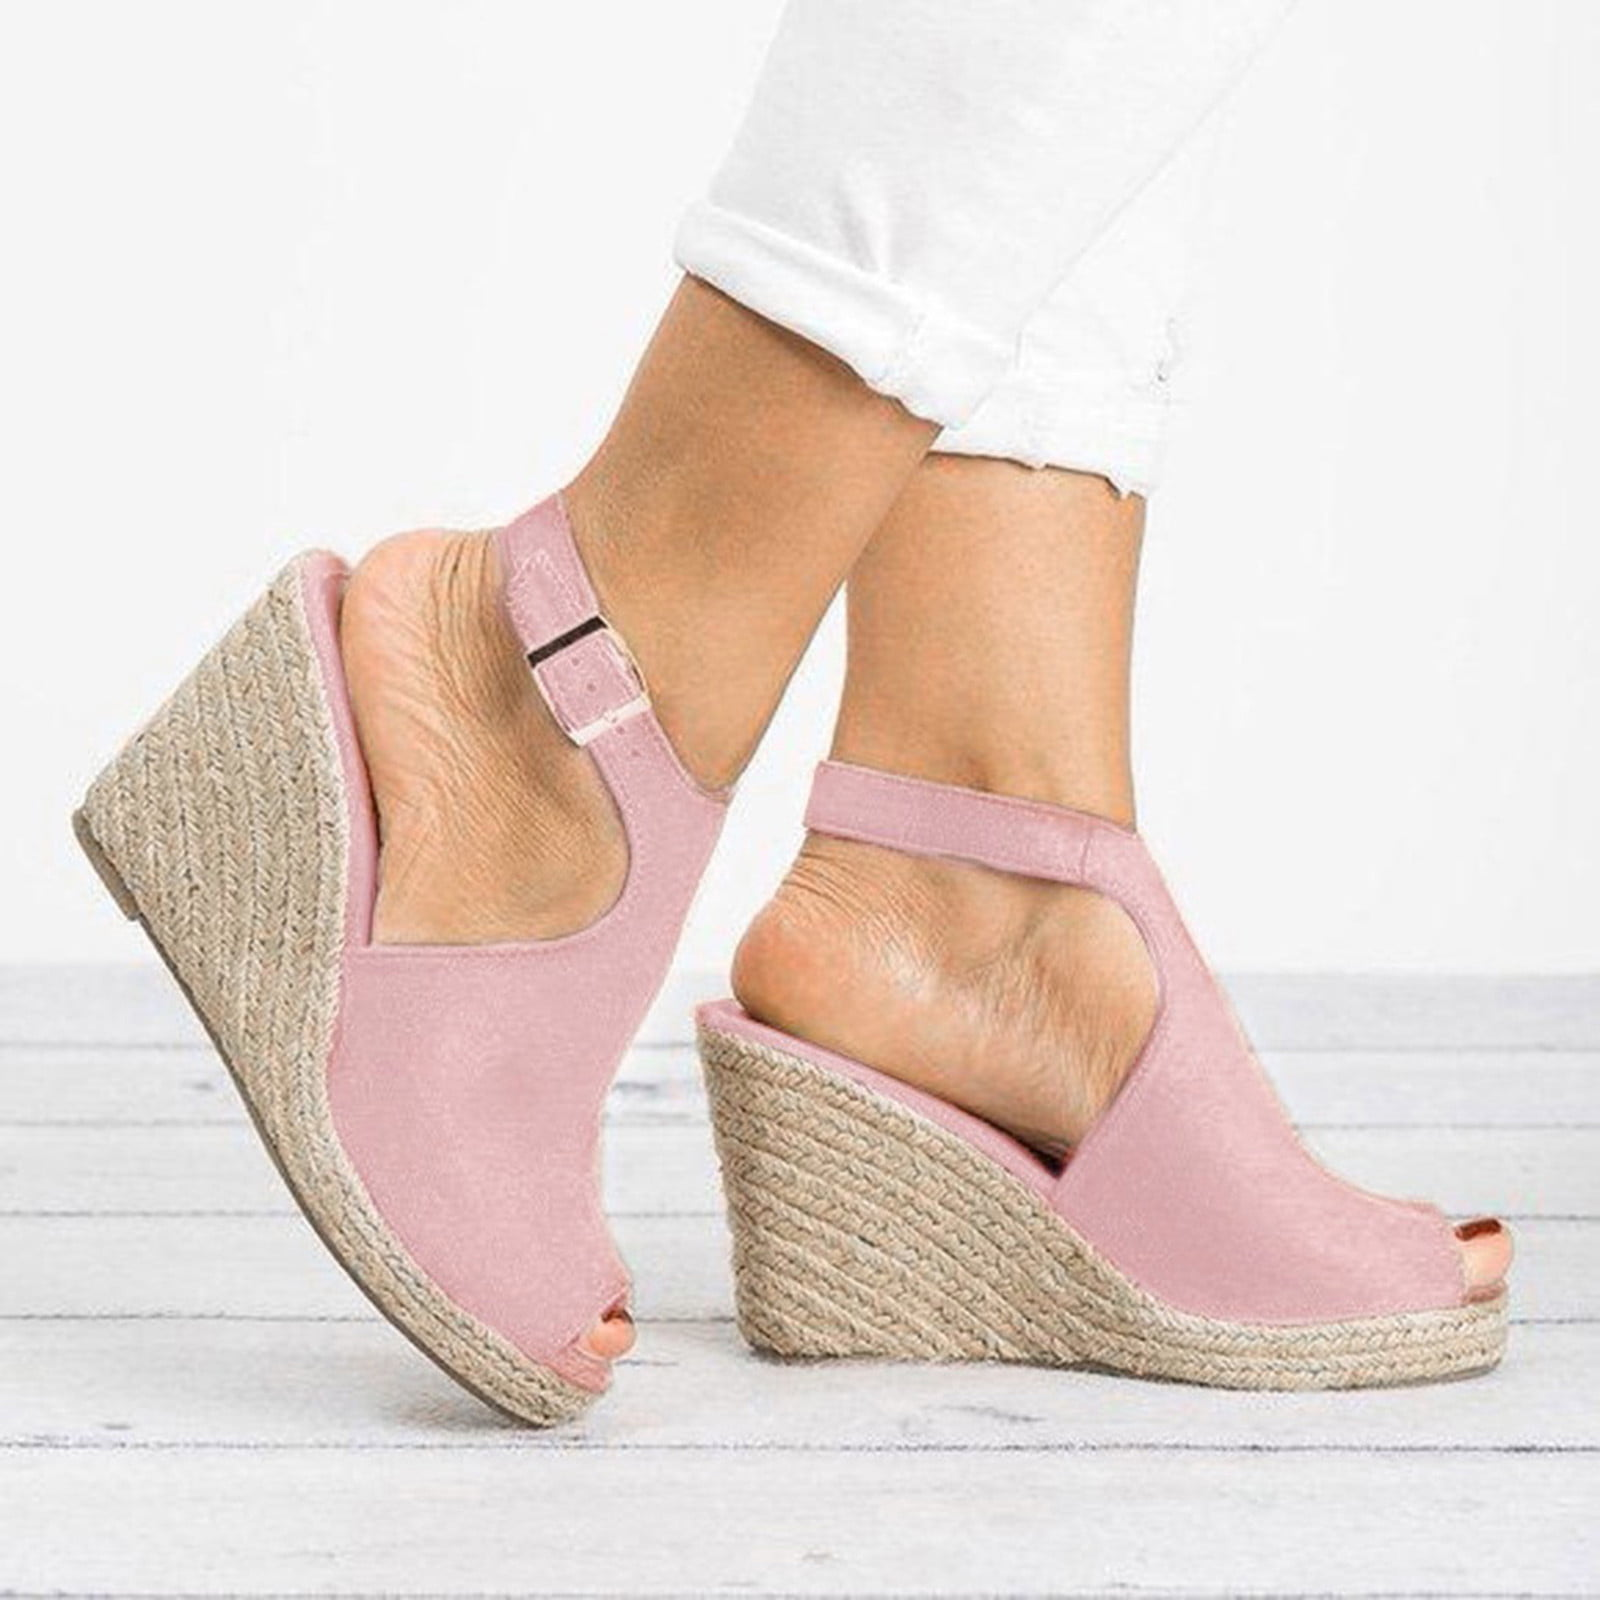 Details about  /Womens Suede Leather Wovean High Wedge Heel Peep toe Sandals Slingback Shoes NEW